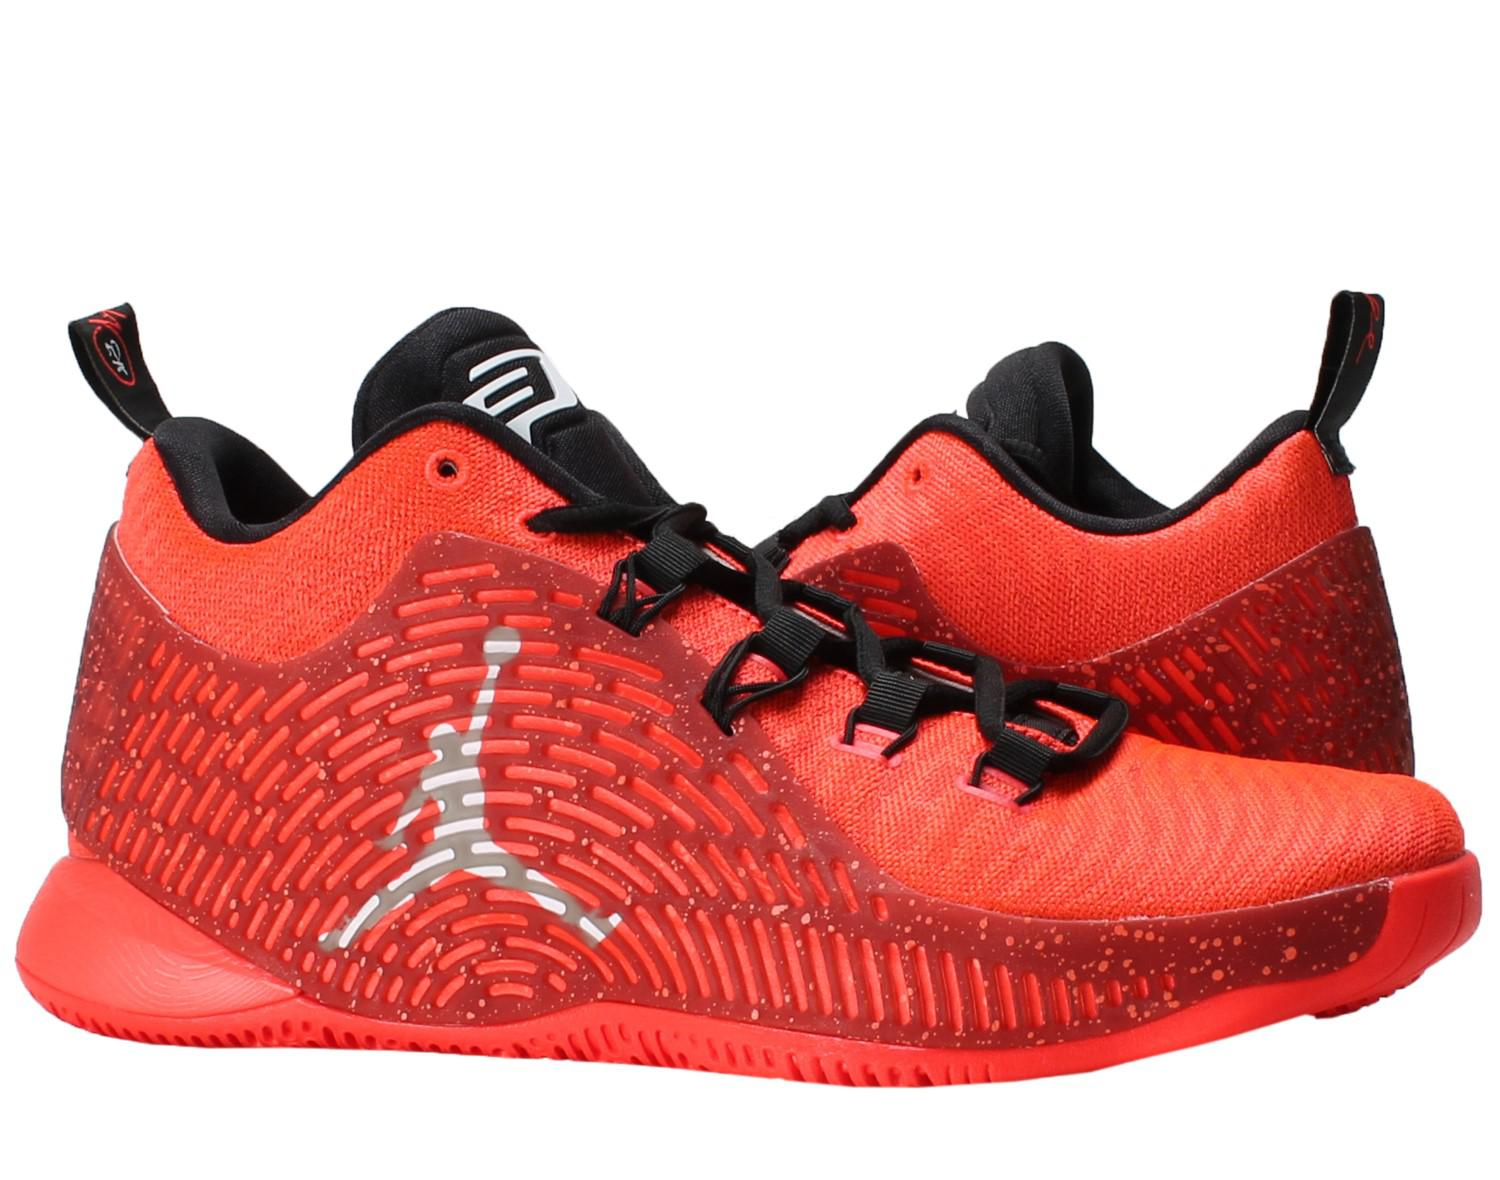 23d5f116d5eb3f Lyst - Nike Air Jordan Cp3.x Basketball Shoes in Red for Men